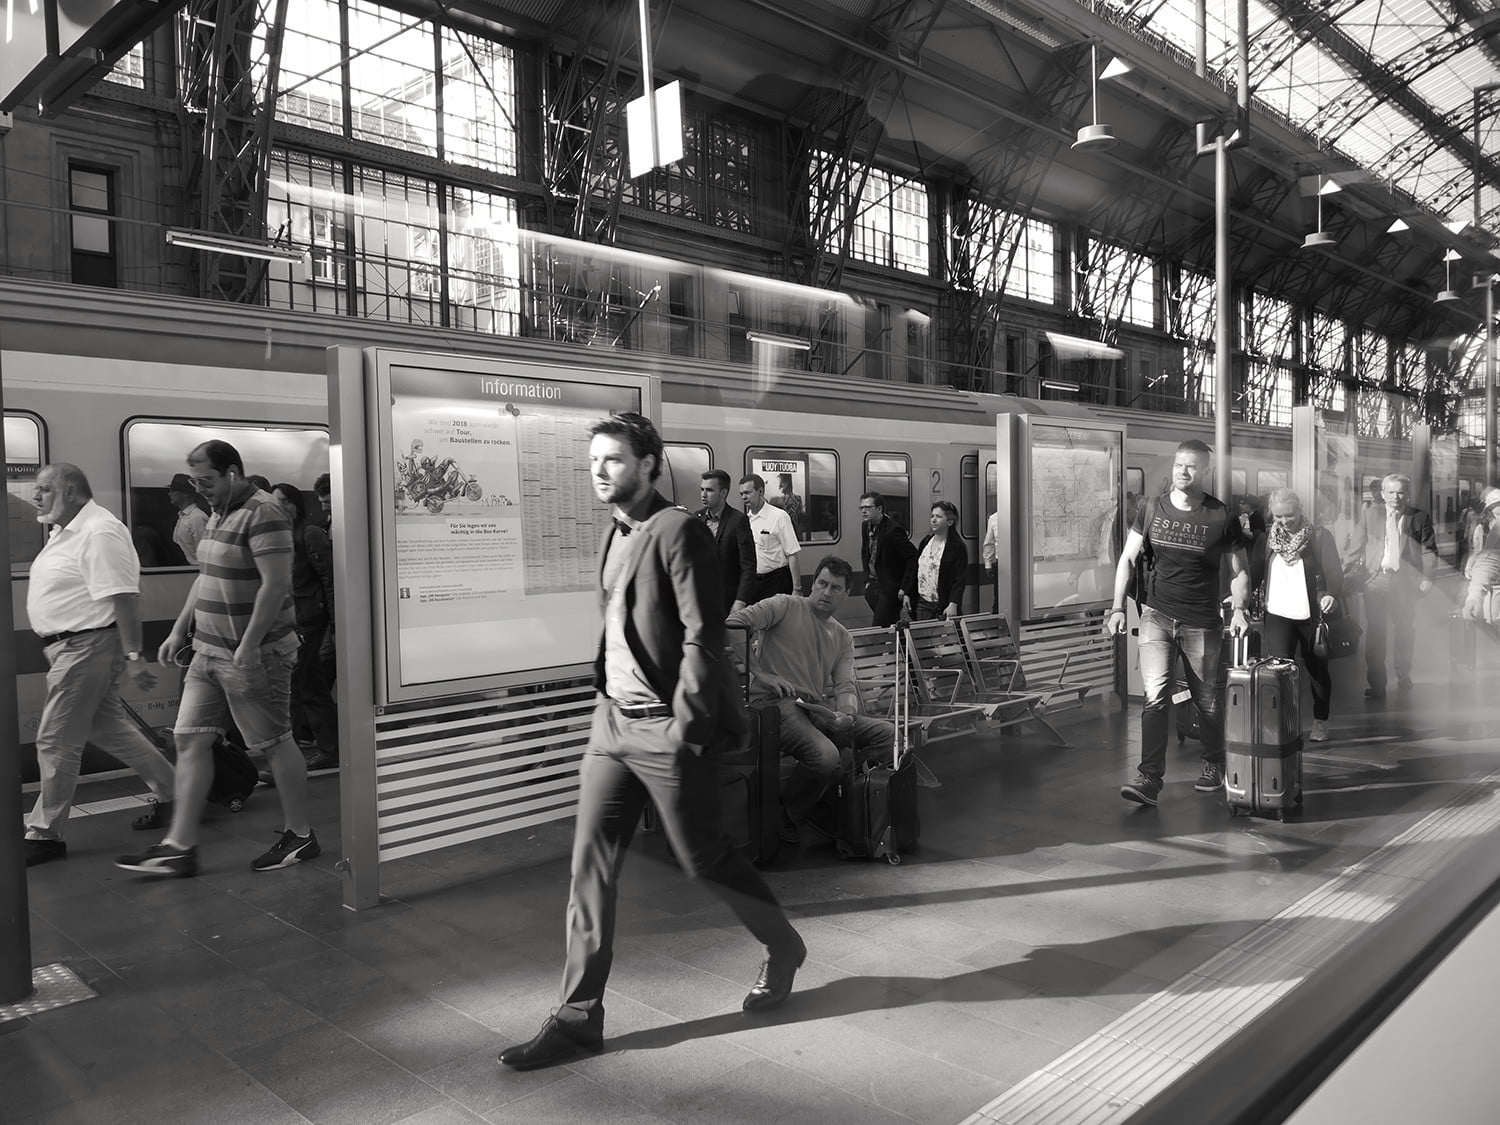 Huawei p20 pro leica street photography feature bw train station